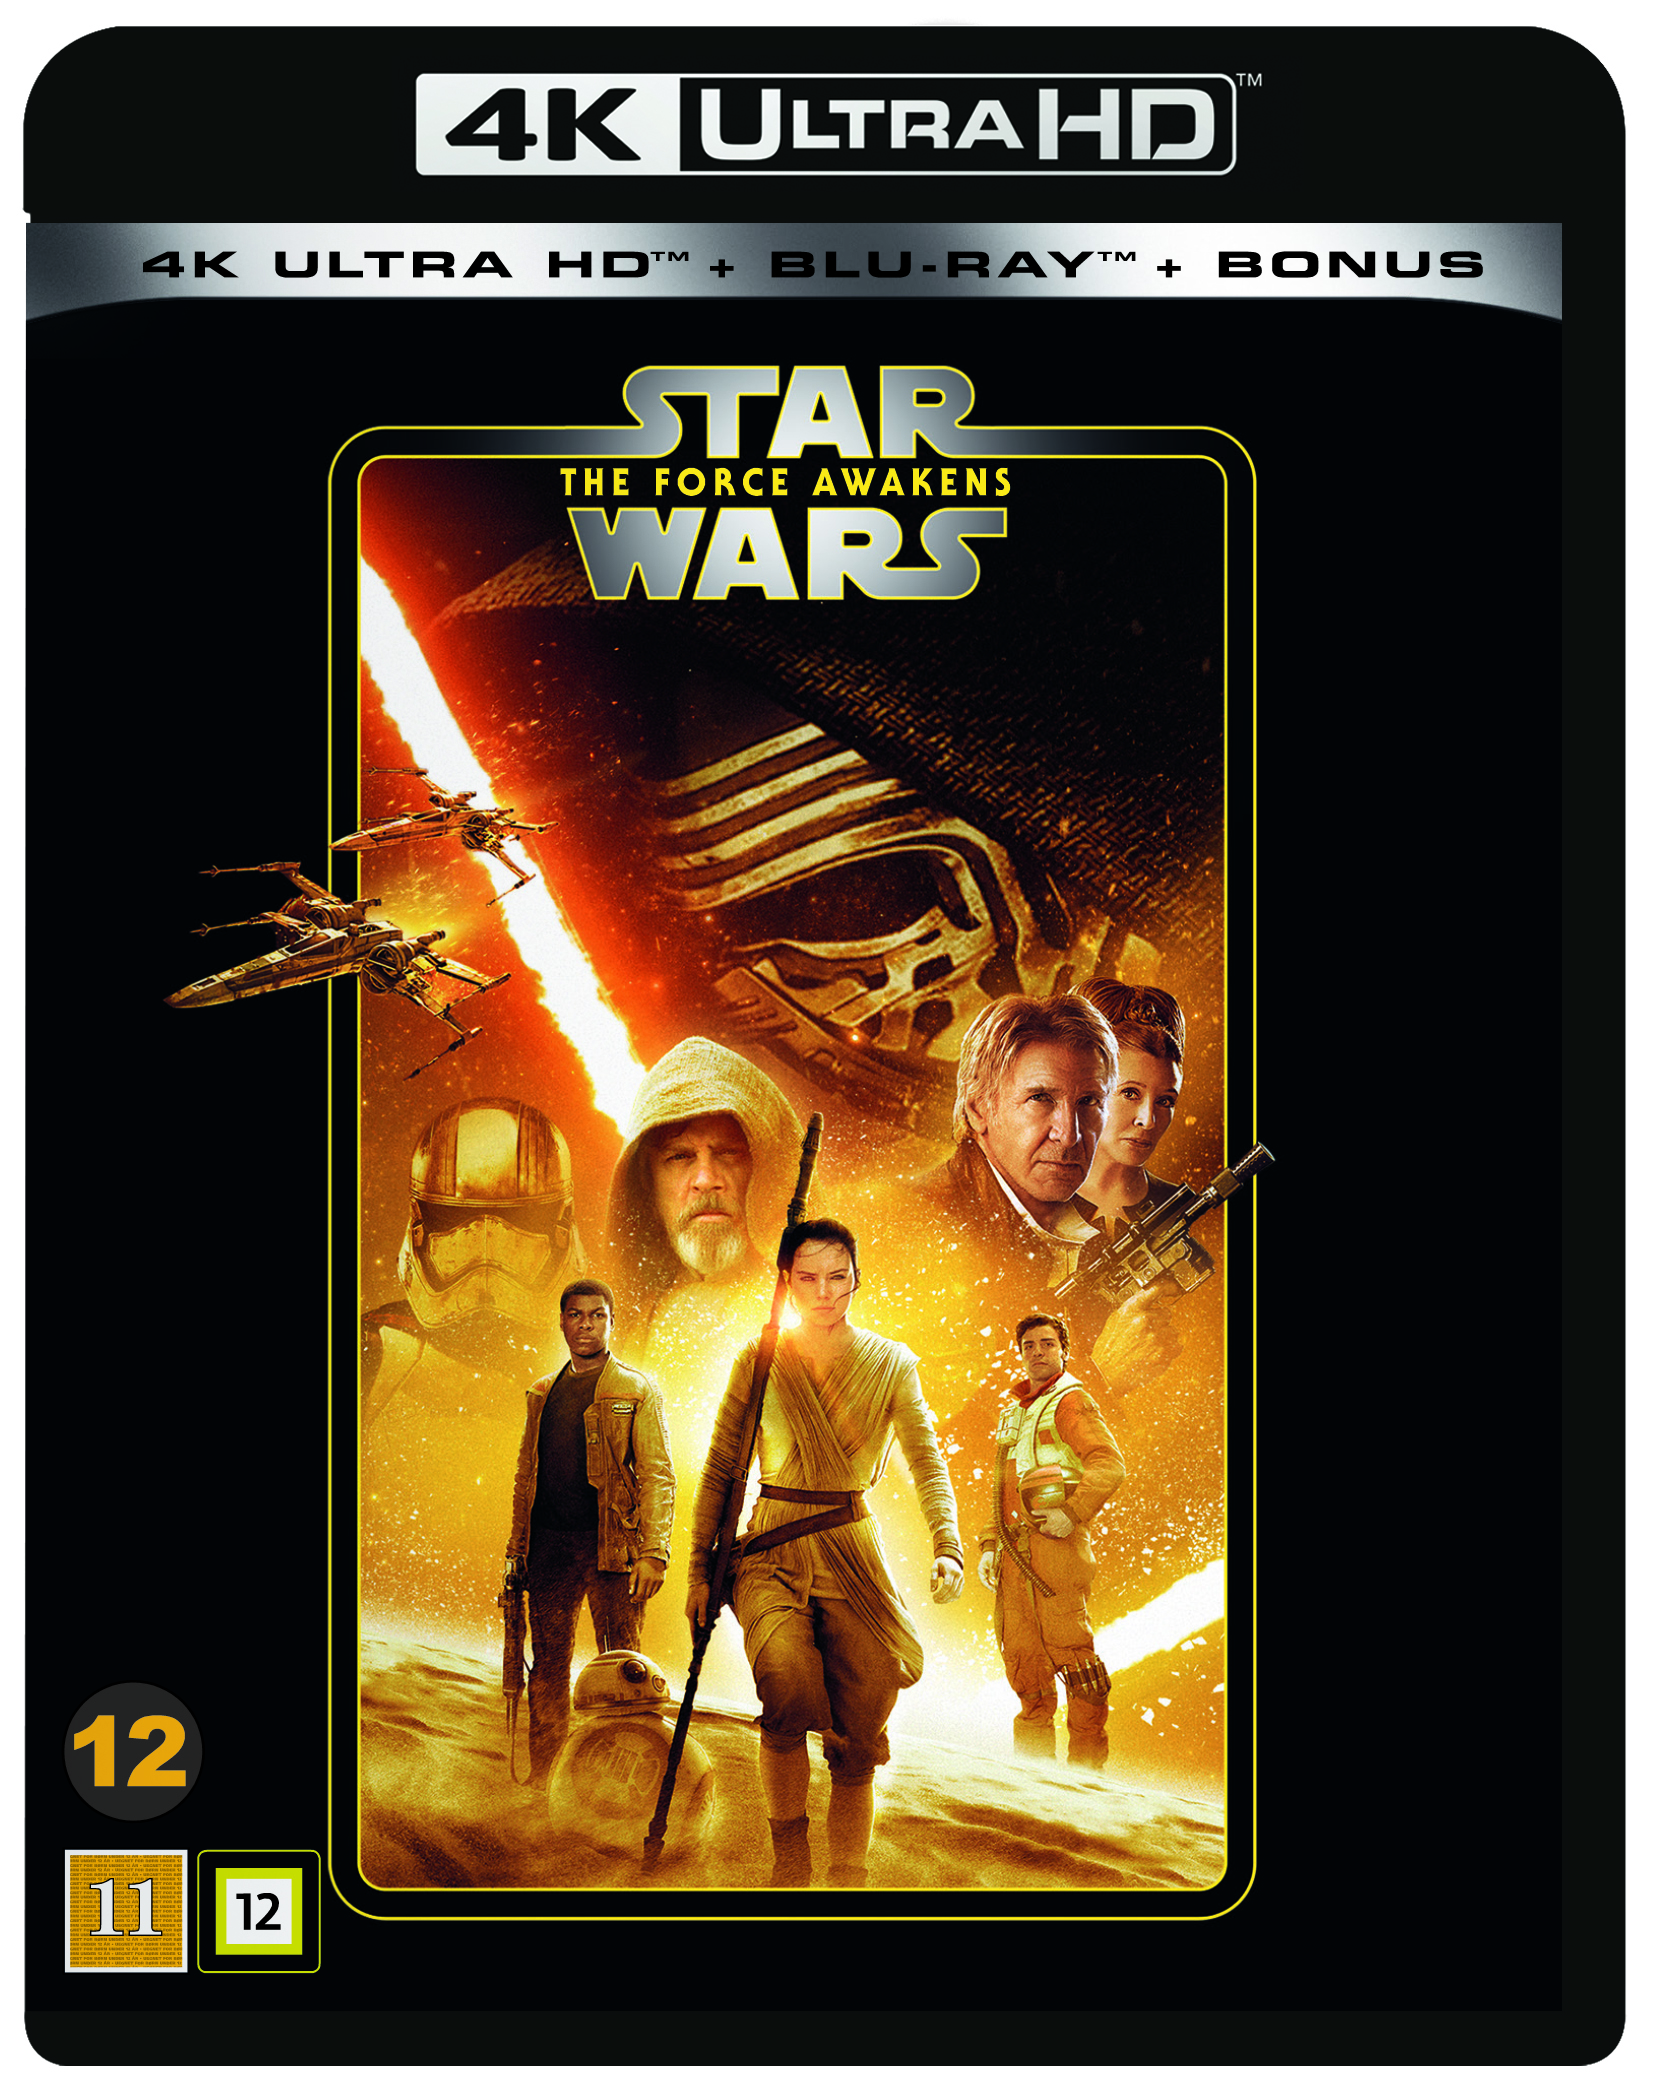 Star Wars Episode Vii The Force Awakens 4k Ultra Hd Blu Ray